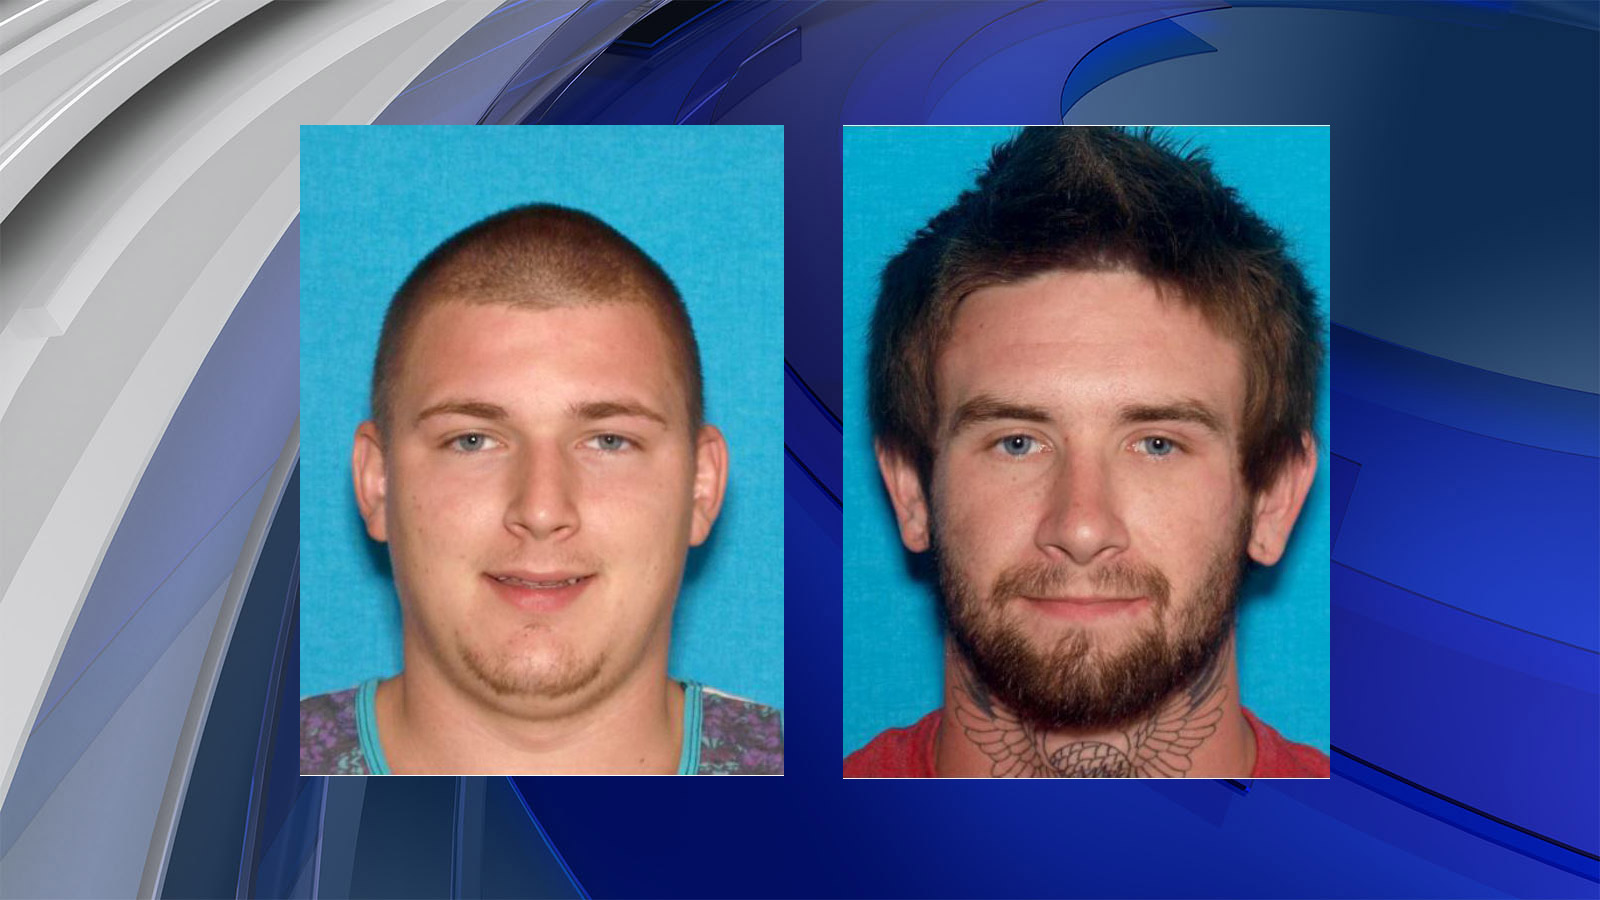 Joshua Foster and Zachary Moore (credit: Weld County Sheriff's Office)